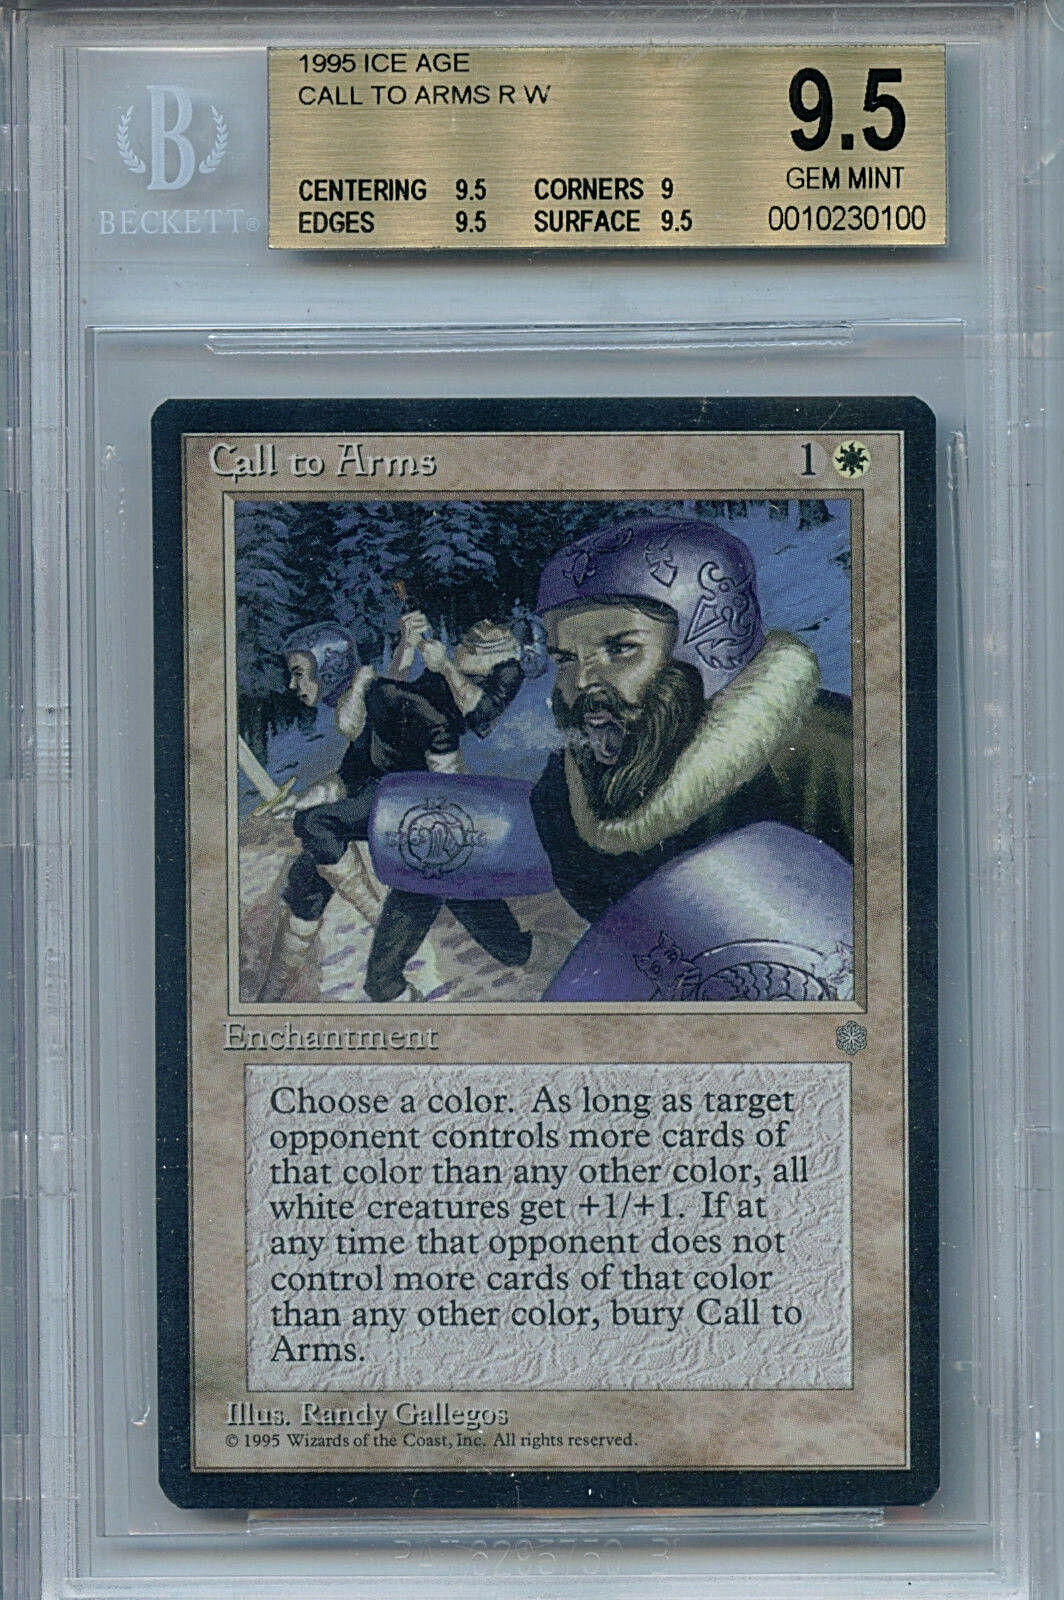 MTG Ice Age Call to Arms BGS 9.5 Gem Mint Magic Card Amricons 01200